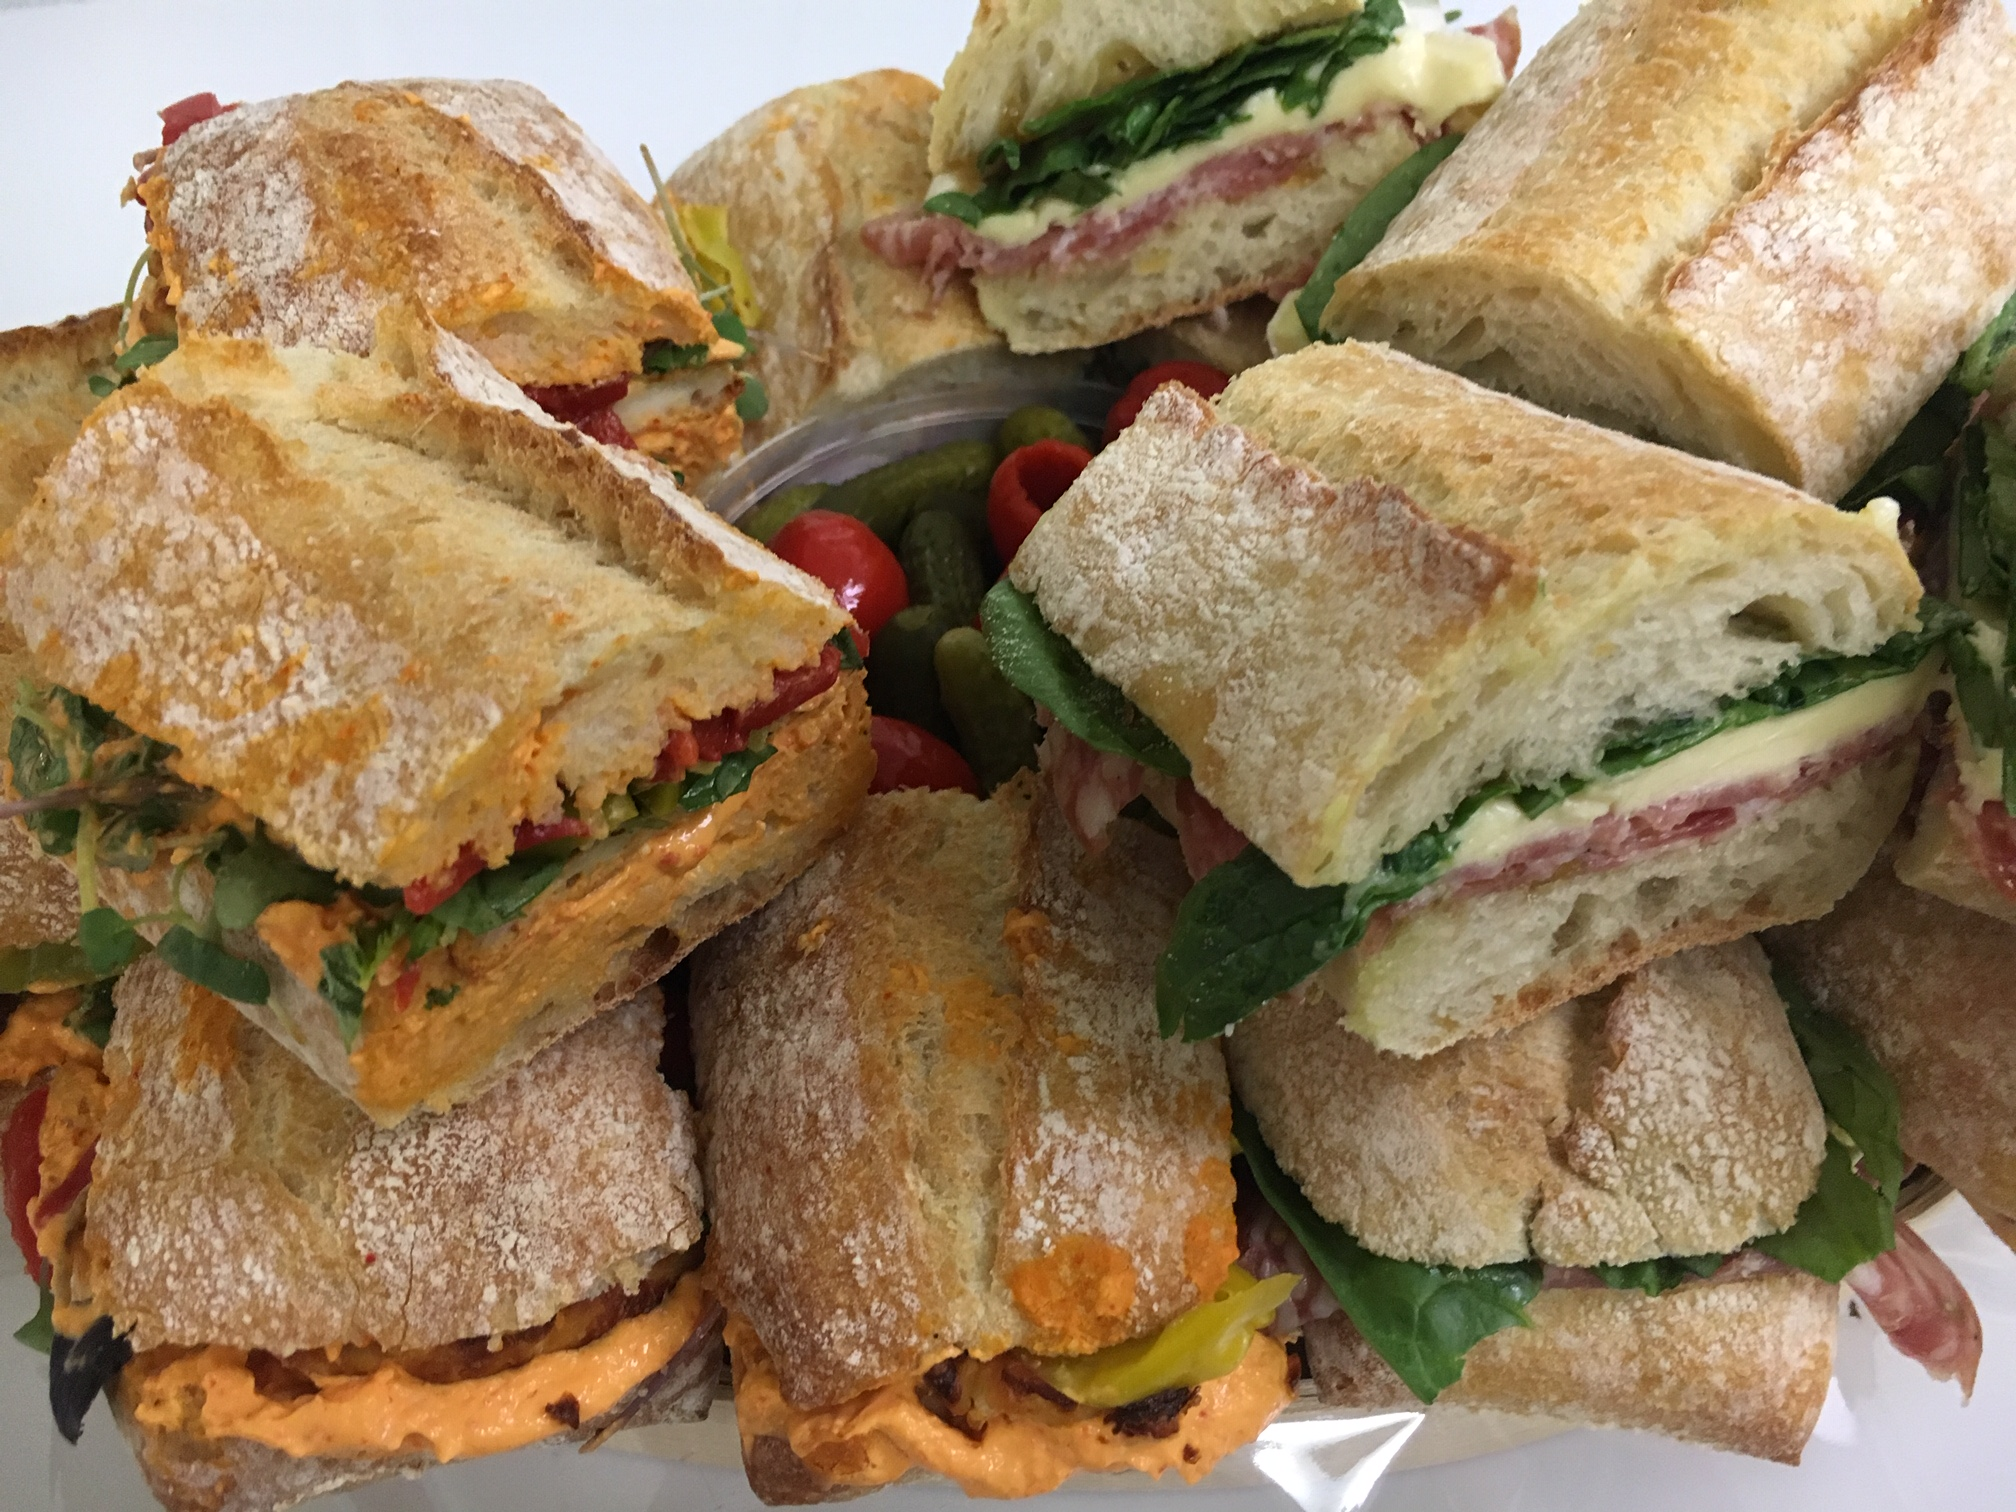 Suited to impress - Our sandwich platters are perfect for office meetings and parties! Starting at $50